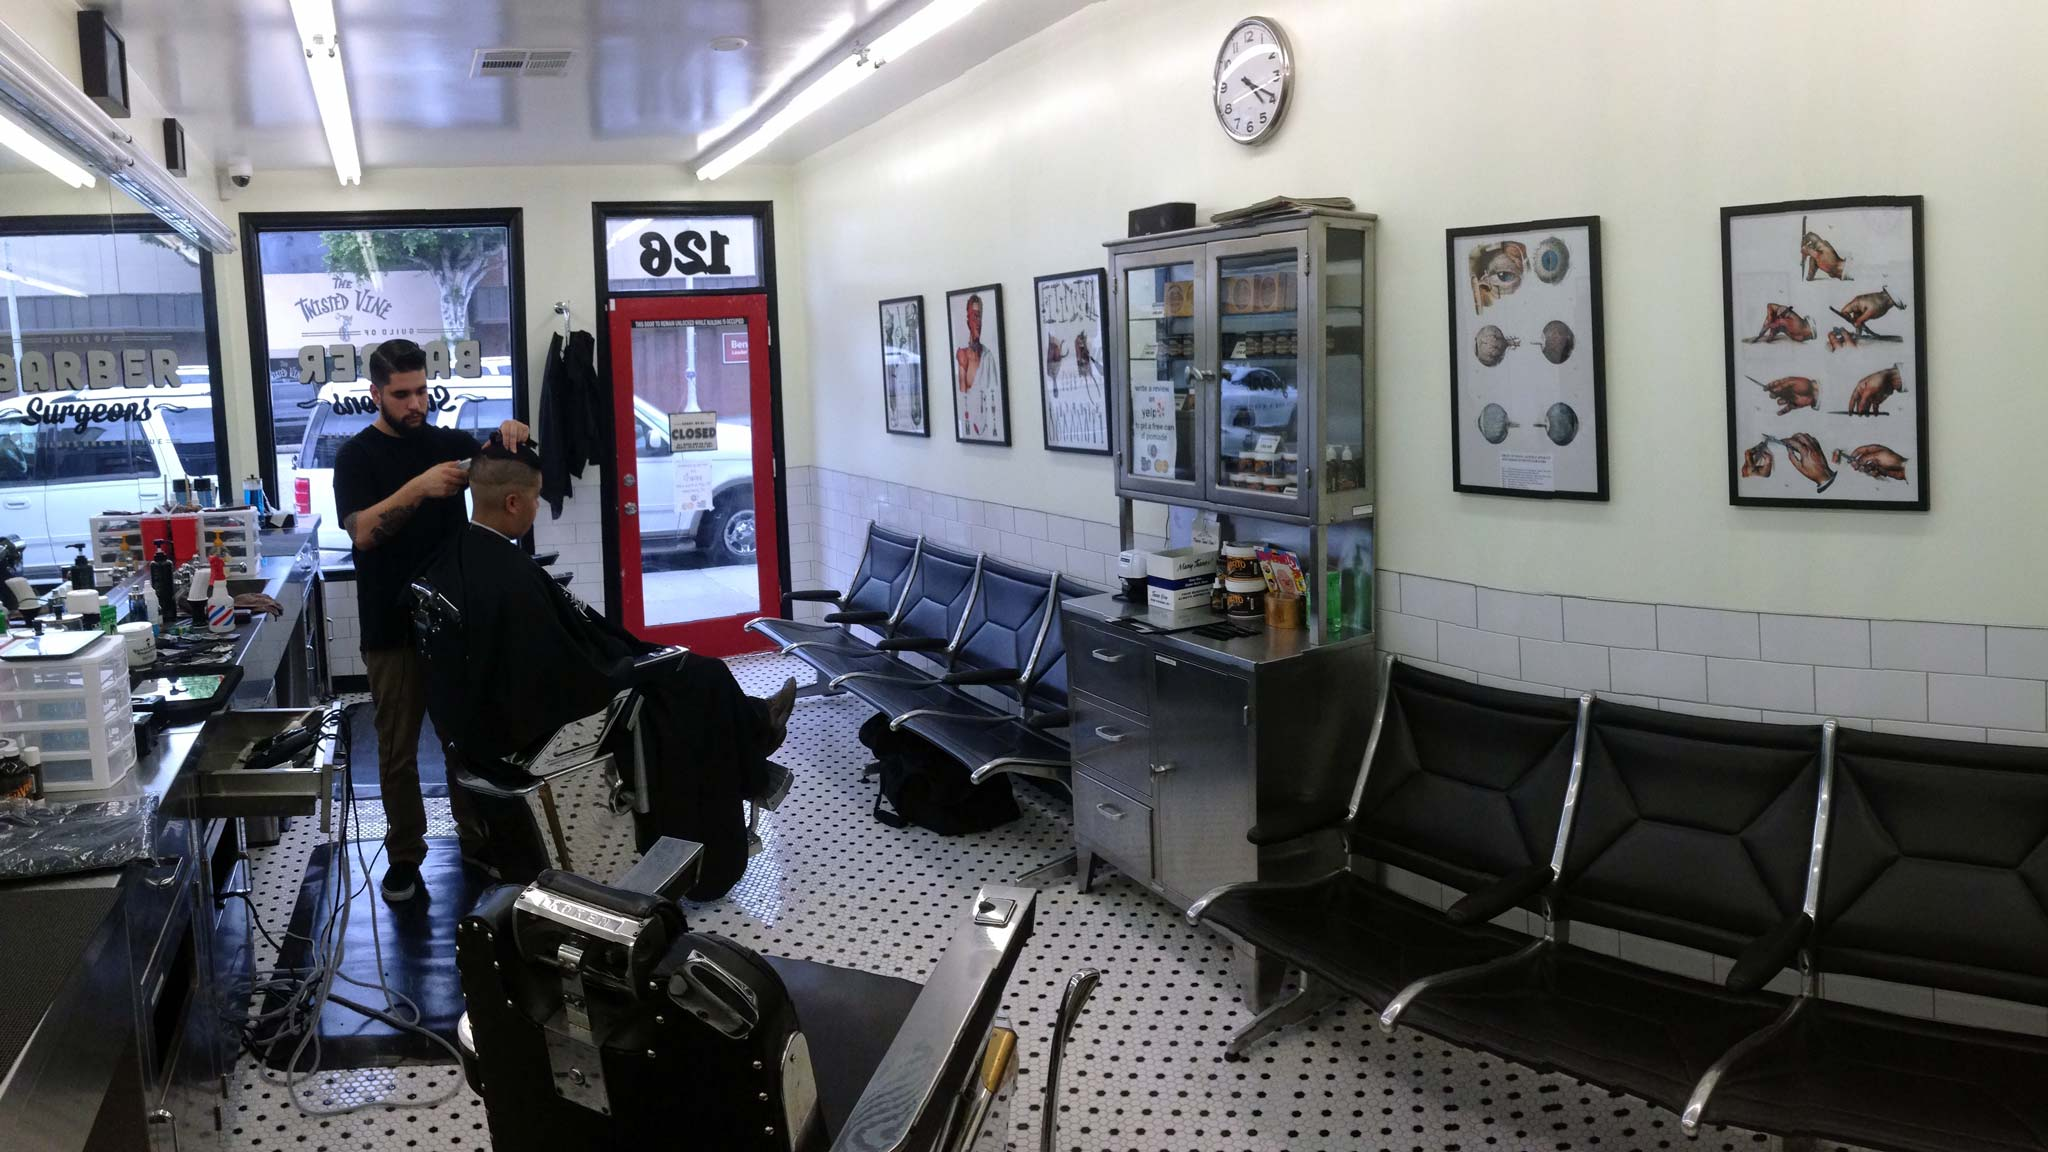 Inside Barber Surgeons Barbershop